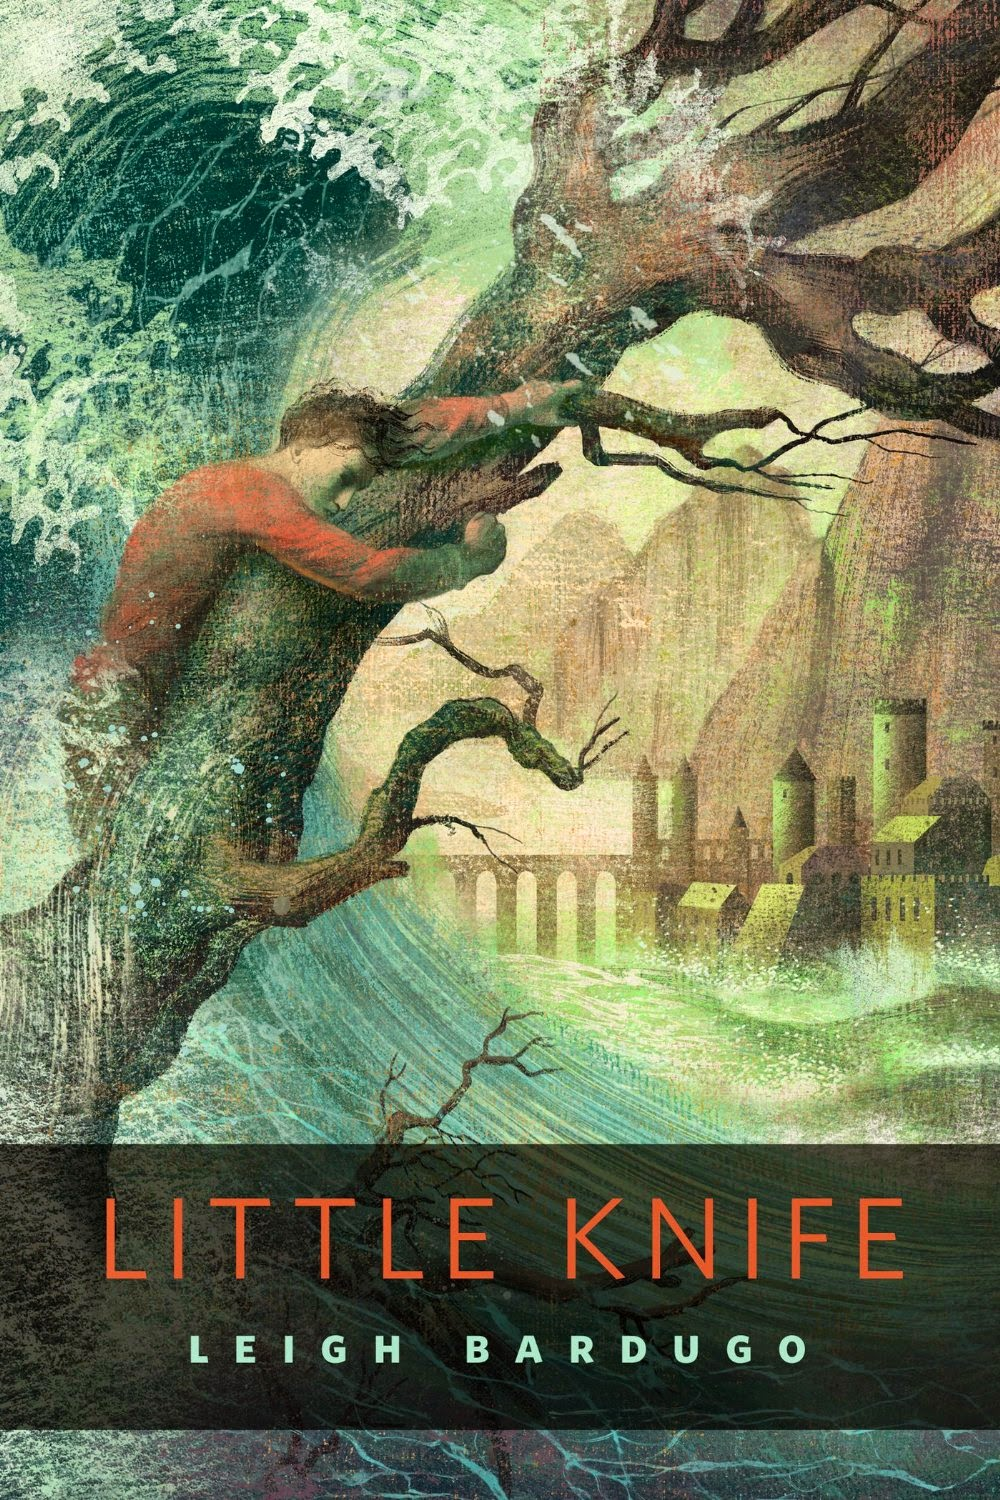 little knife short story novella by leigh bardugo the grisha series trilogy fantasy ya young adult ravkan folk tale retellings cover large hd